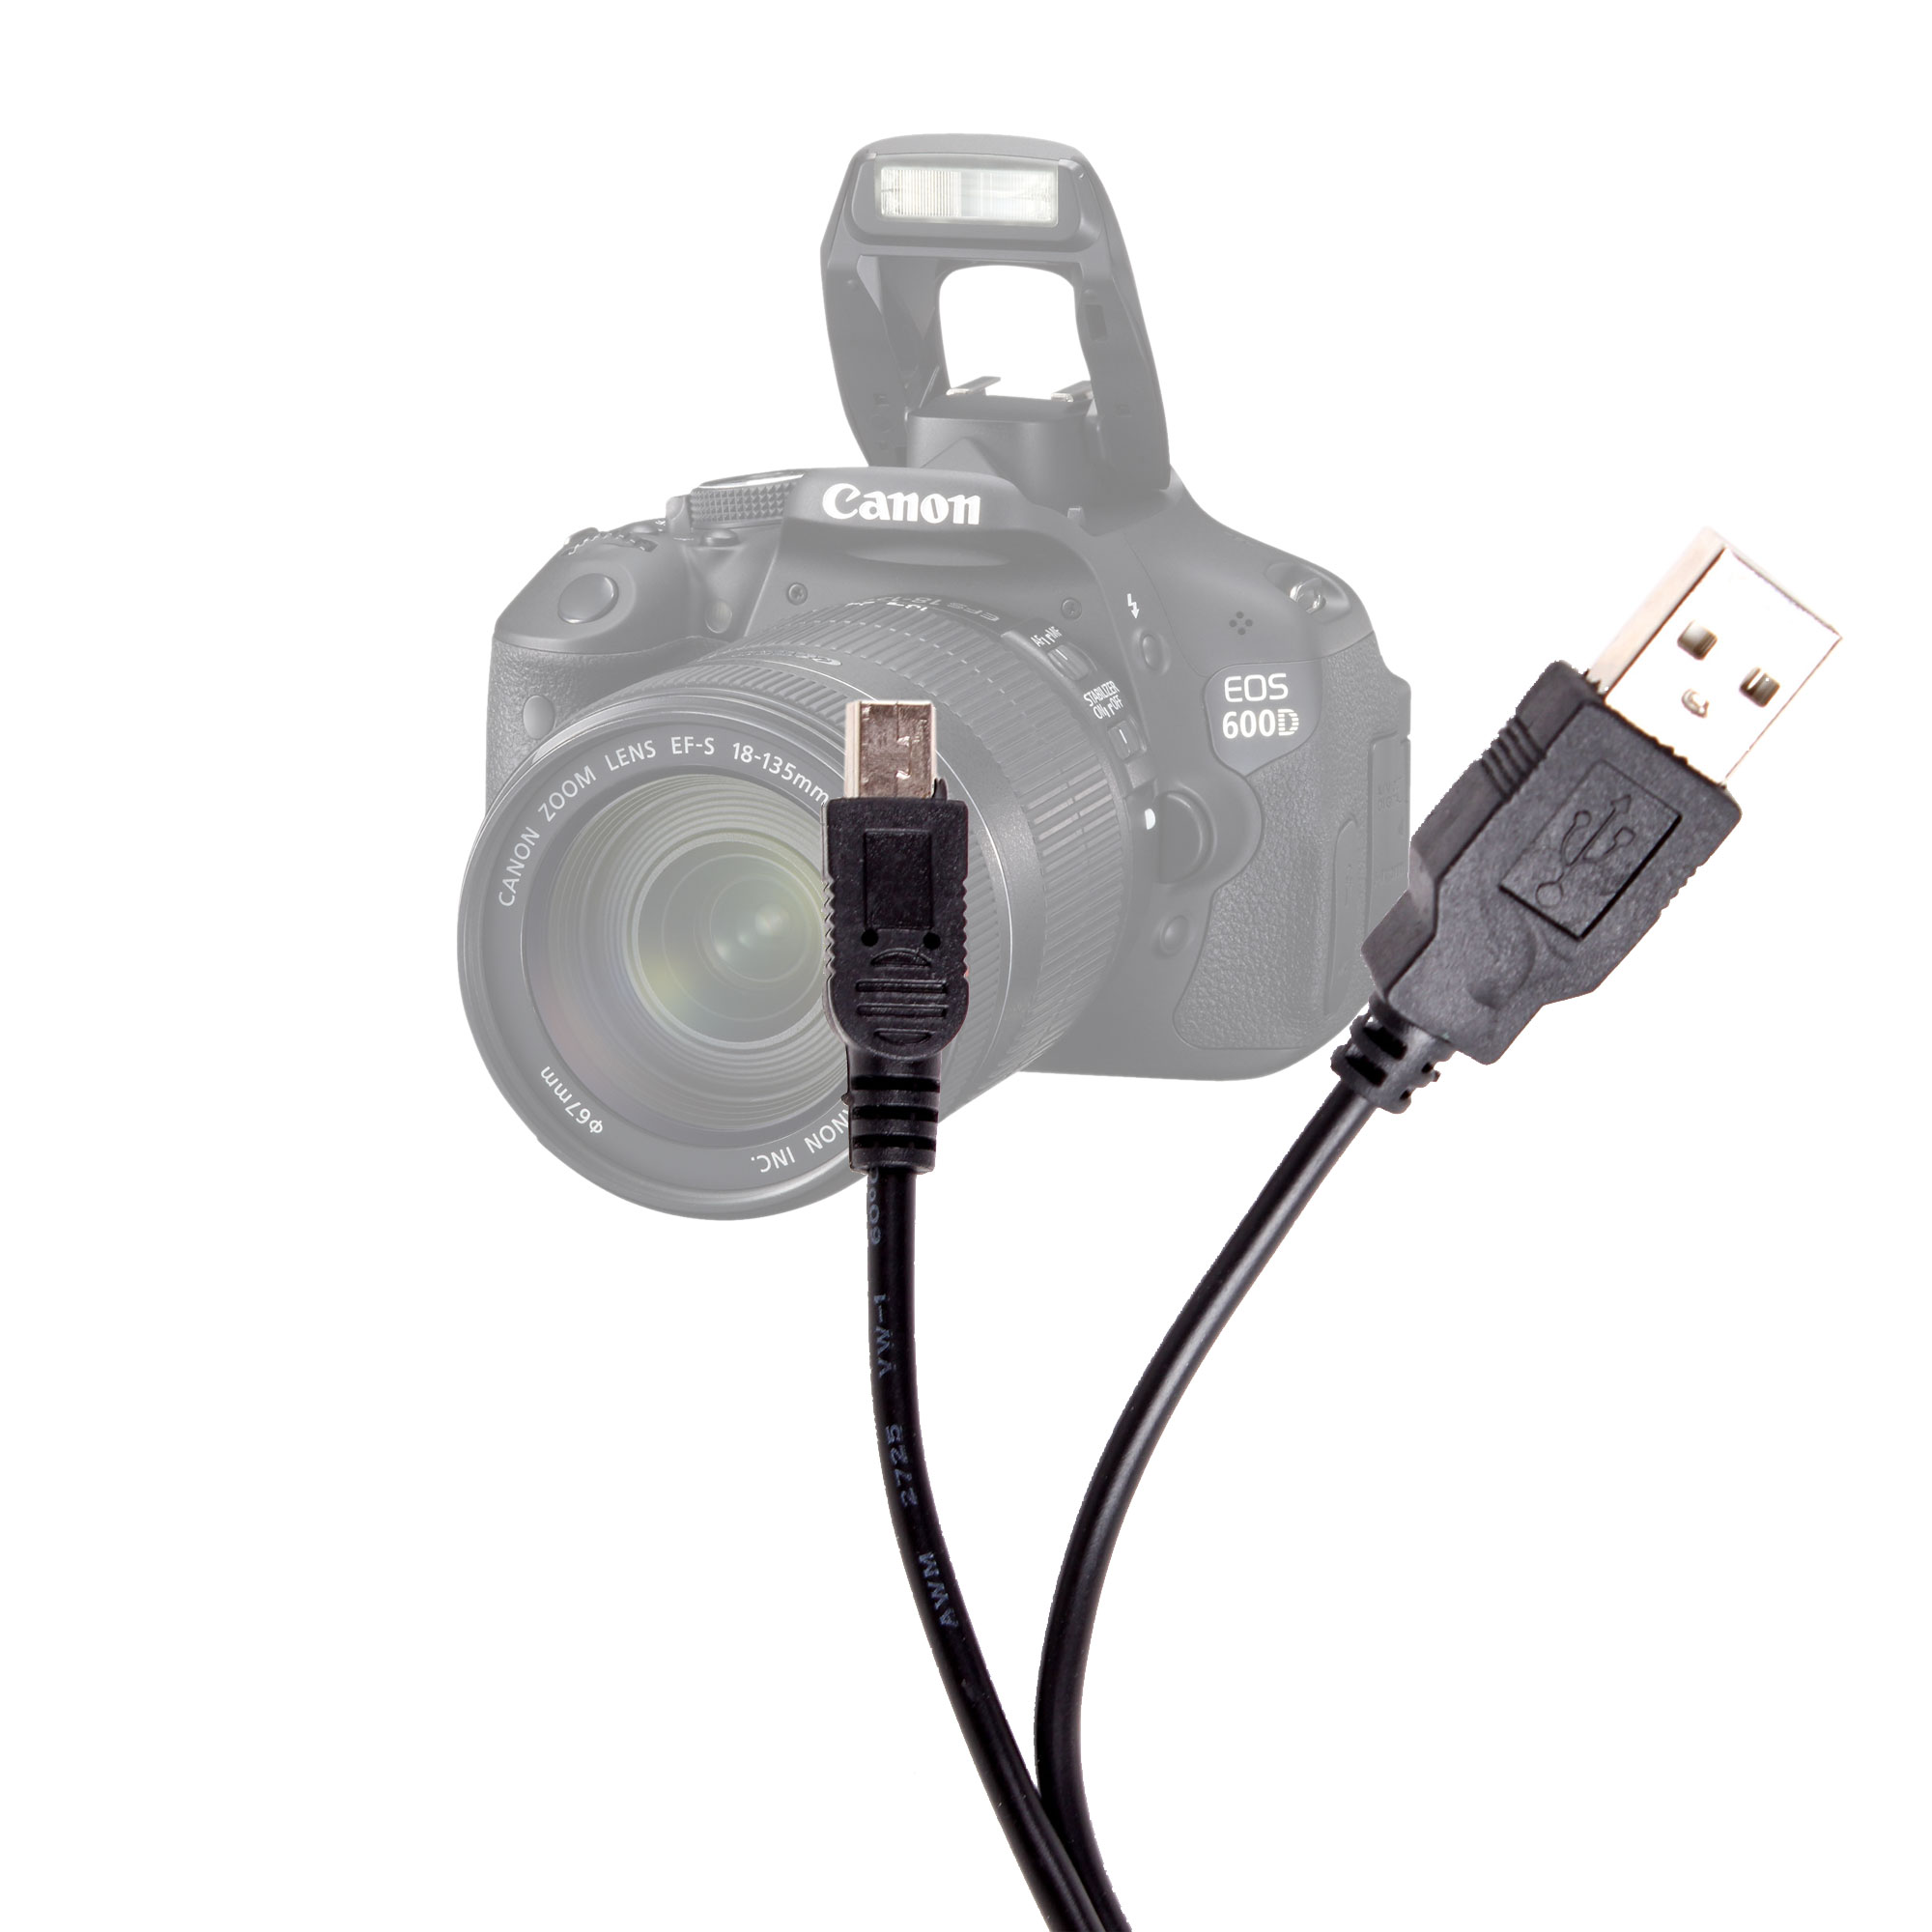 Camera Usb Cable : Slr camera usb cable lead wire for canon eos d